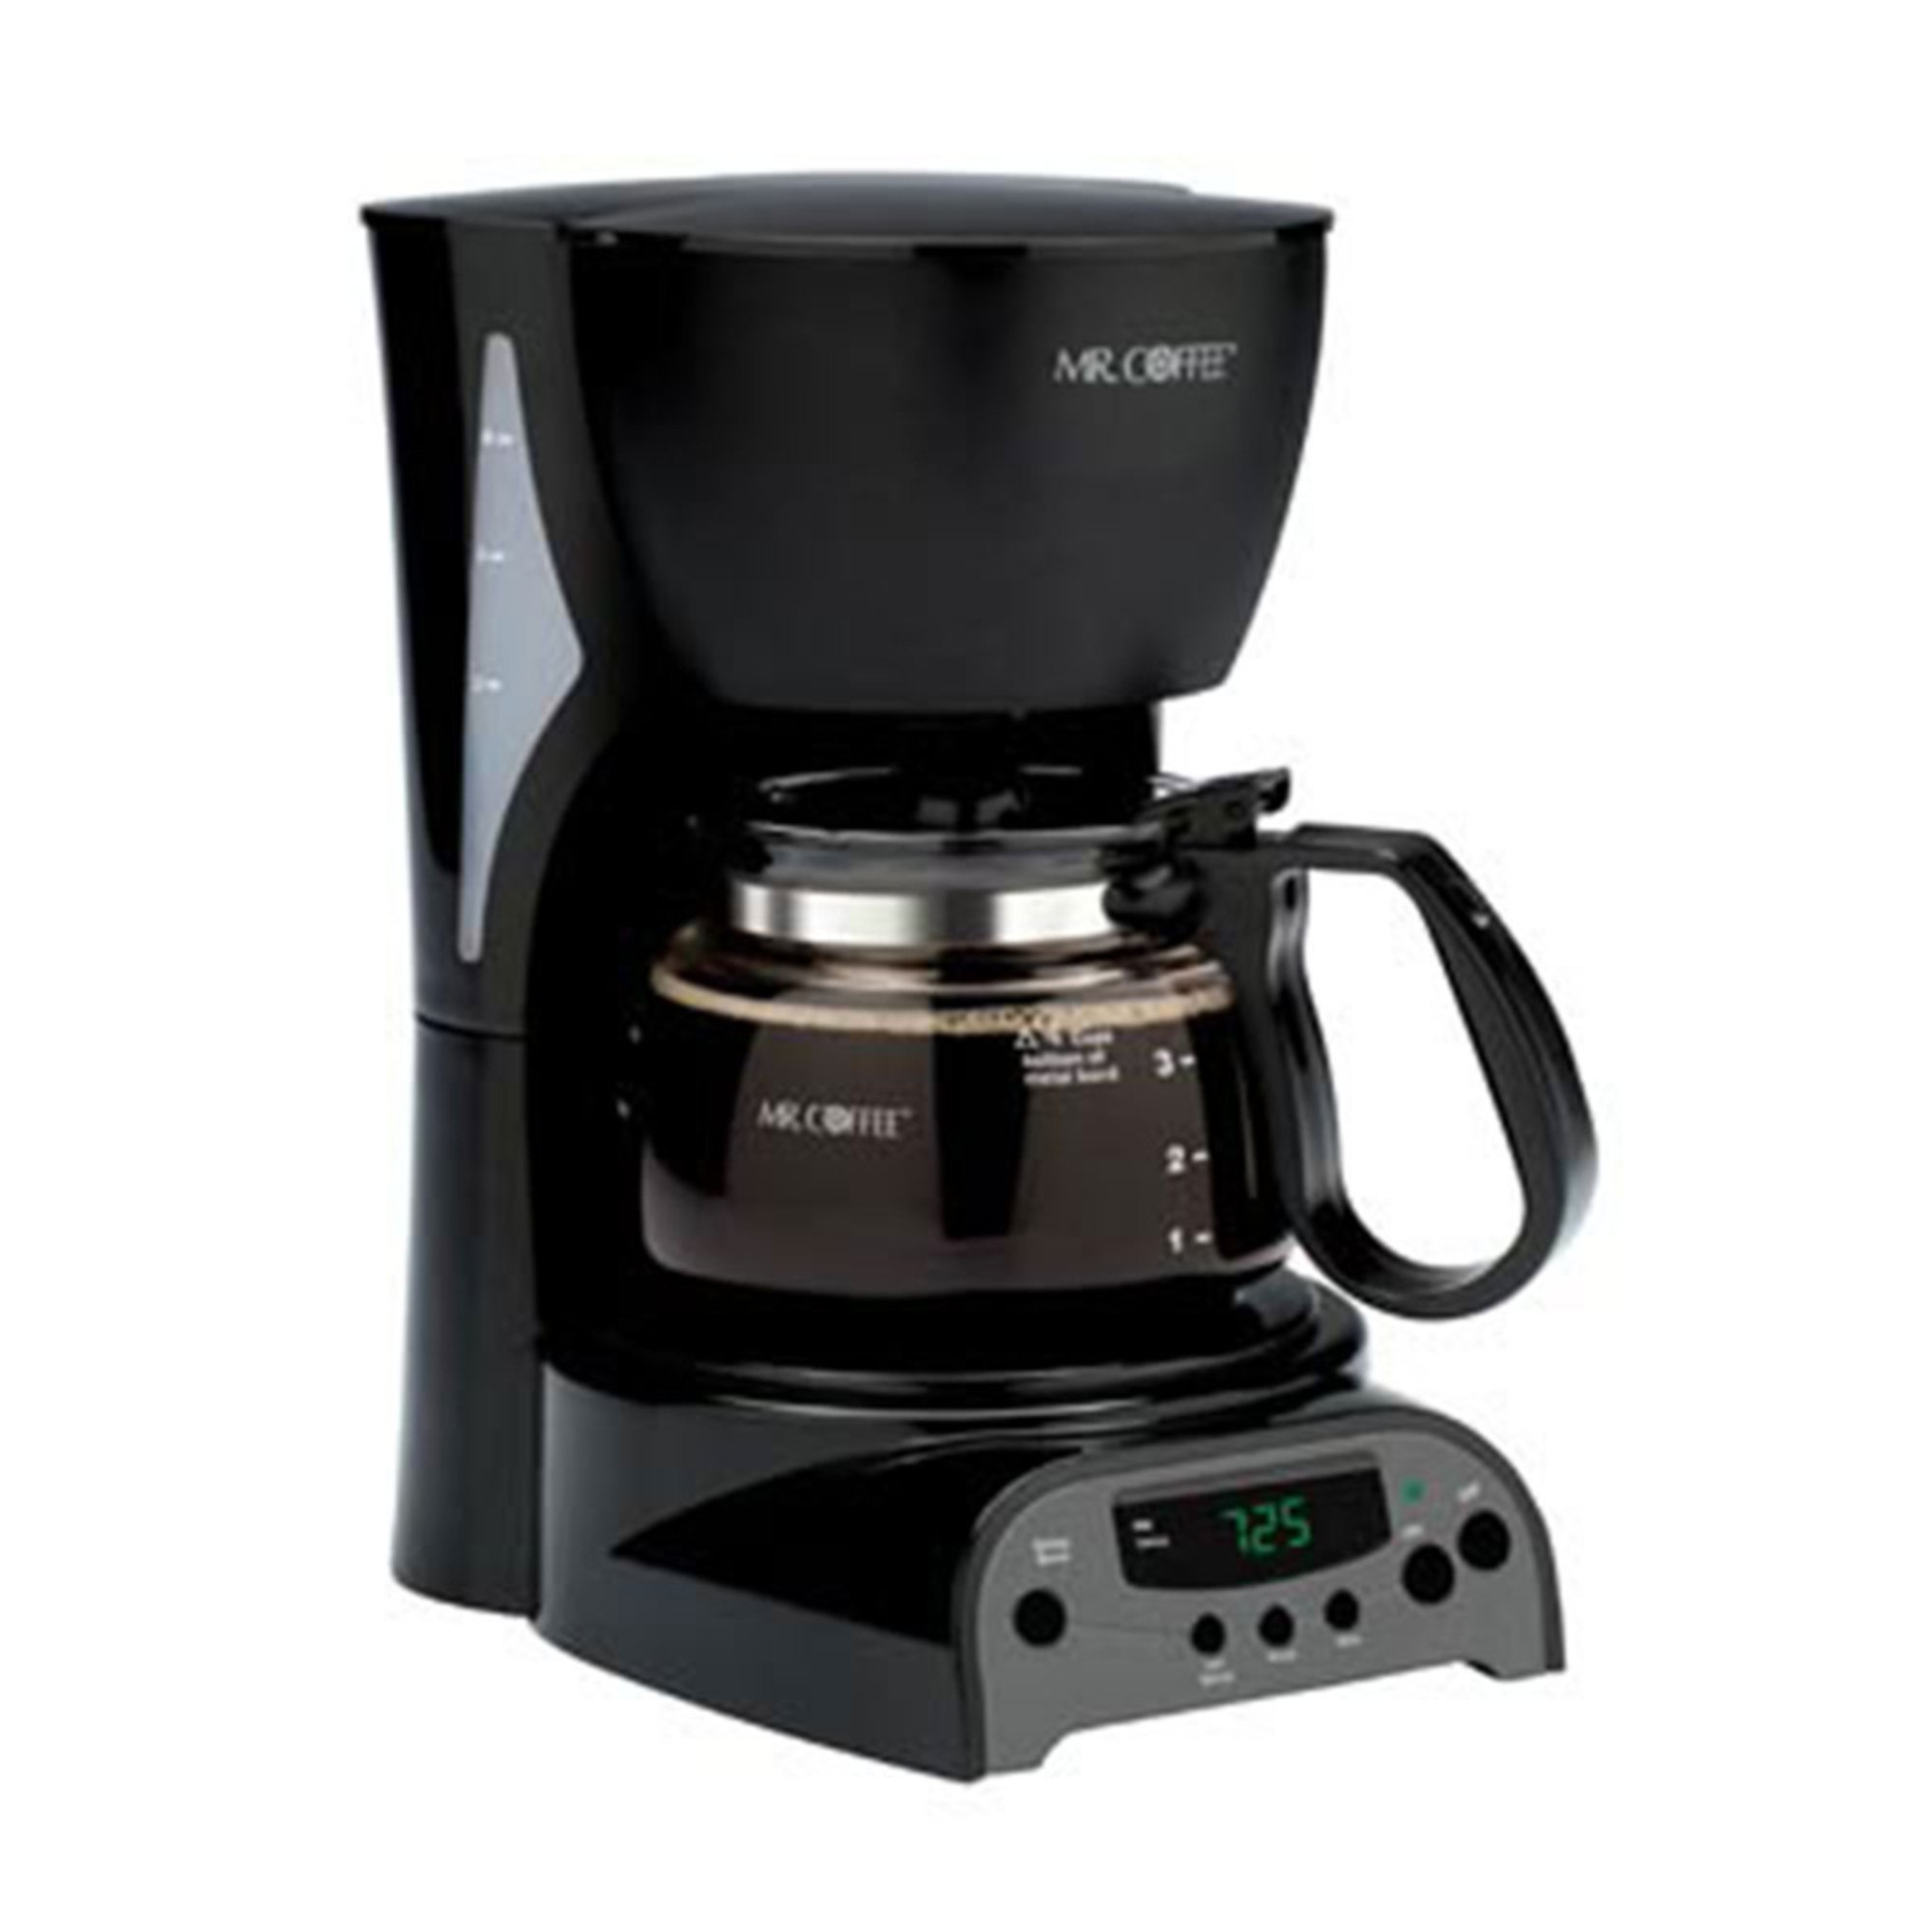 Mr. Coffee Simple Brew 4-cup Programmable Coffee Maker, Black (drx5-rb) Coffee Makers For ...